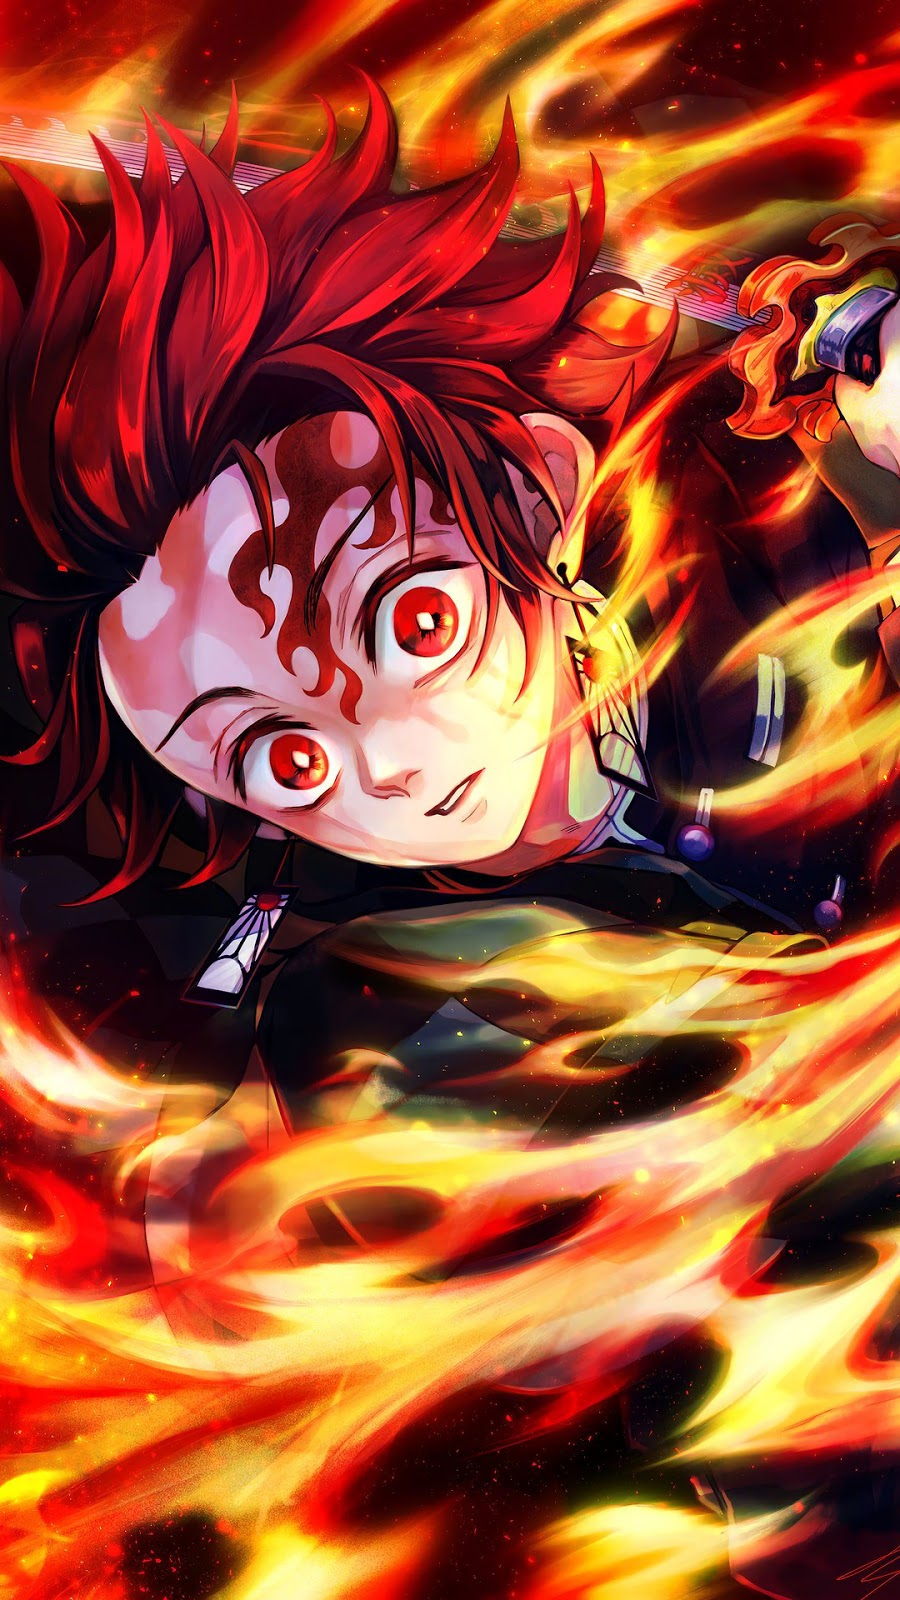 40 Most Beautiful Demon Slayer Wallpapers for Mobile